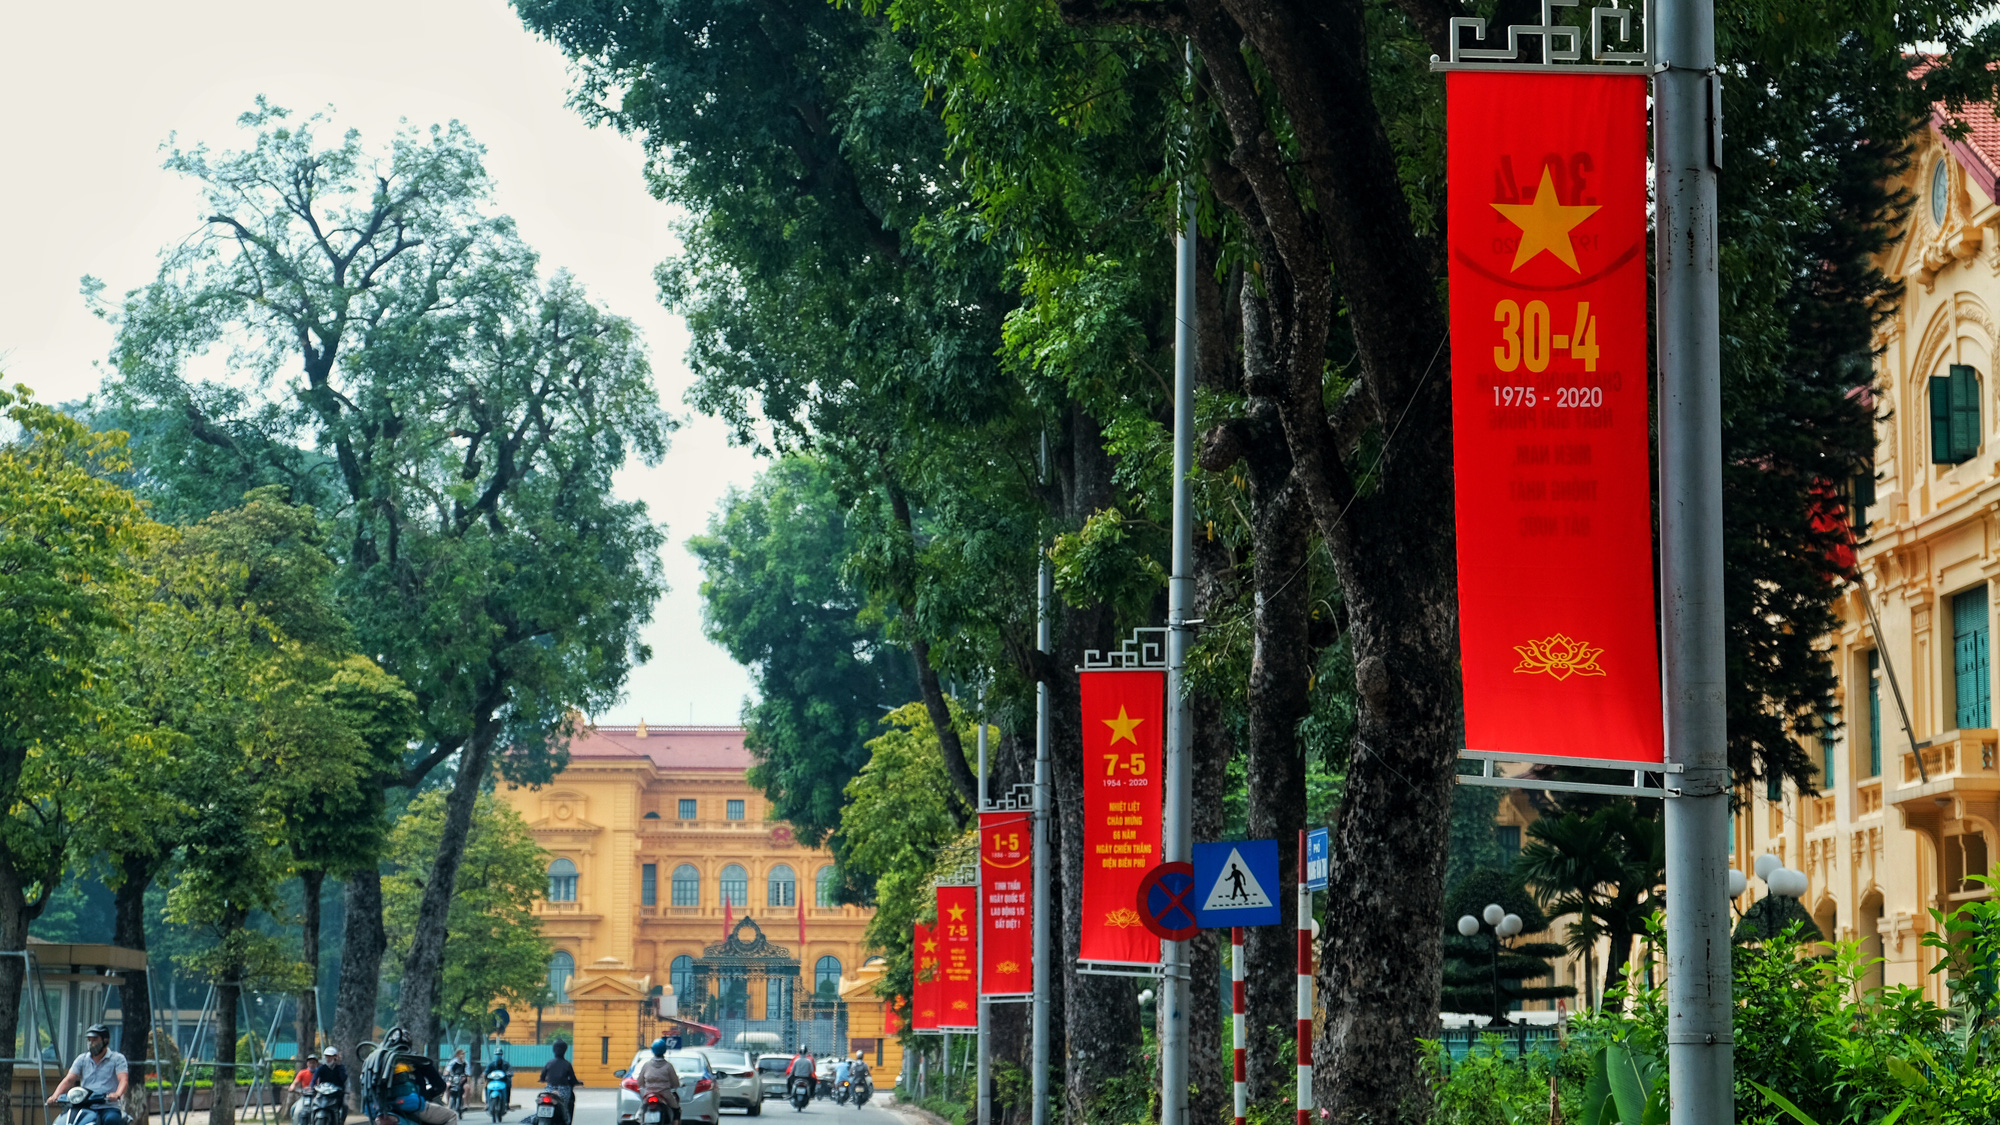 Multiple banners are hanged along Hoang Van Thu Street in Ba Dinh District, Hanoi to mark Vietnam's National Day on April 30, 2020. Photo: Mai Thuong / Tuoi Tre